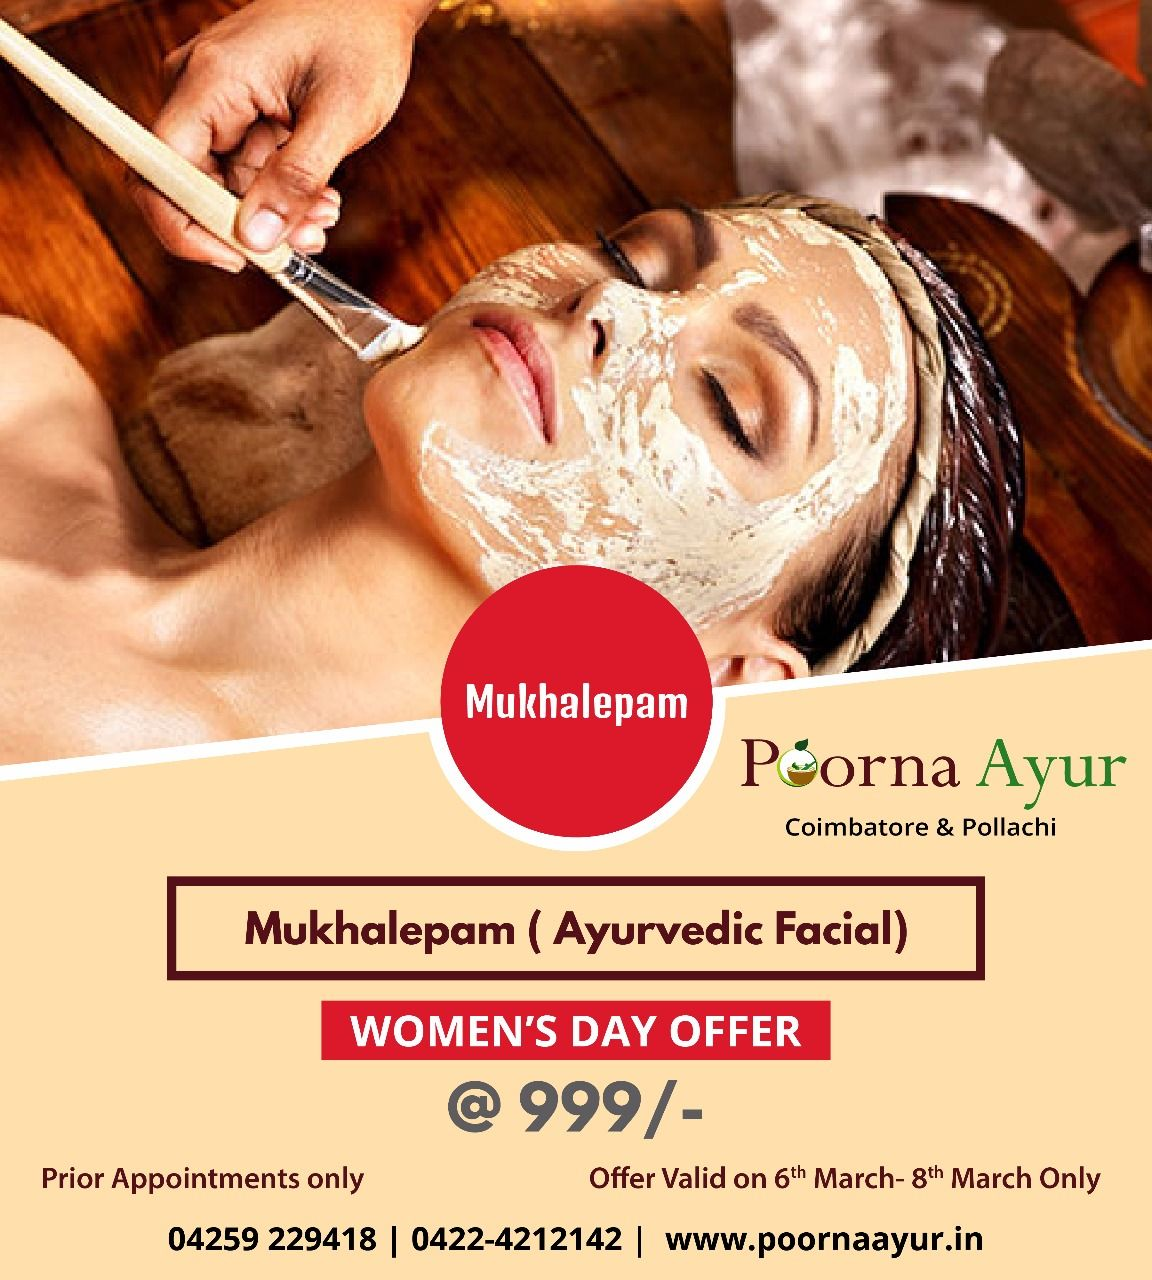 Pin On Ayurveda Offers At Poornaayur